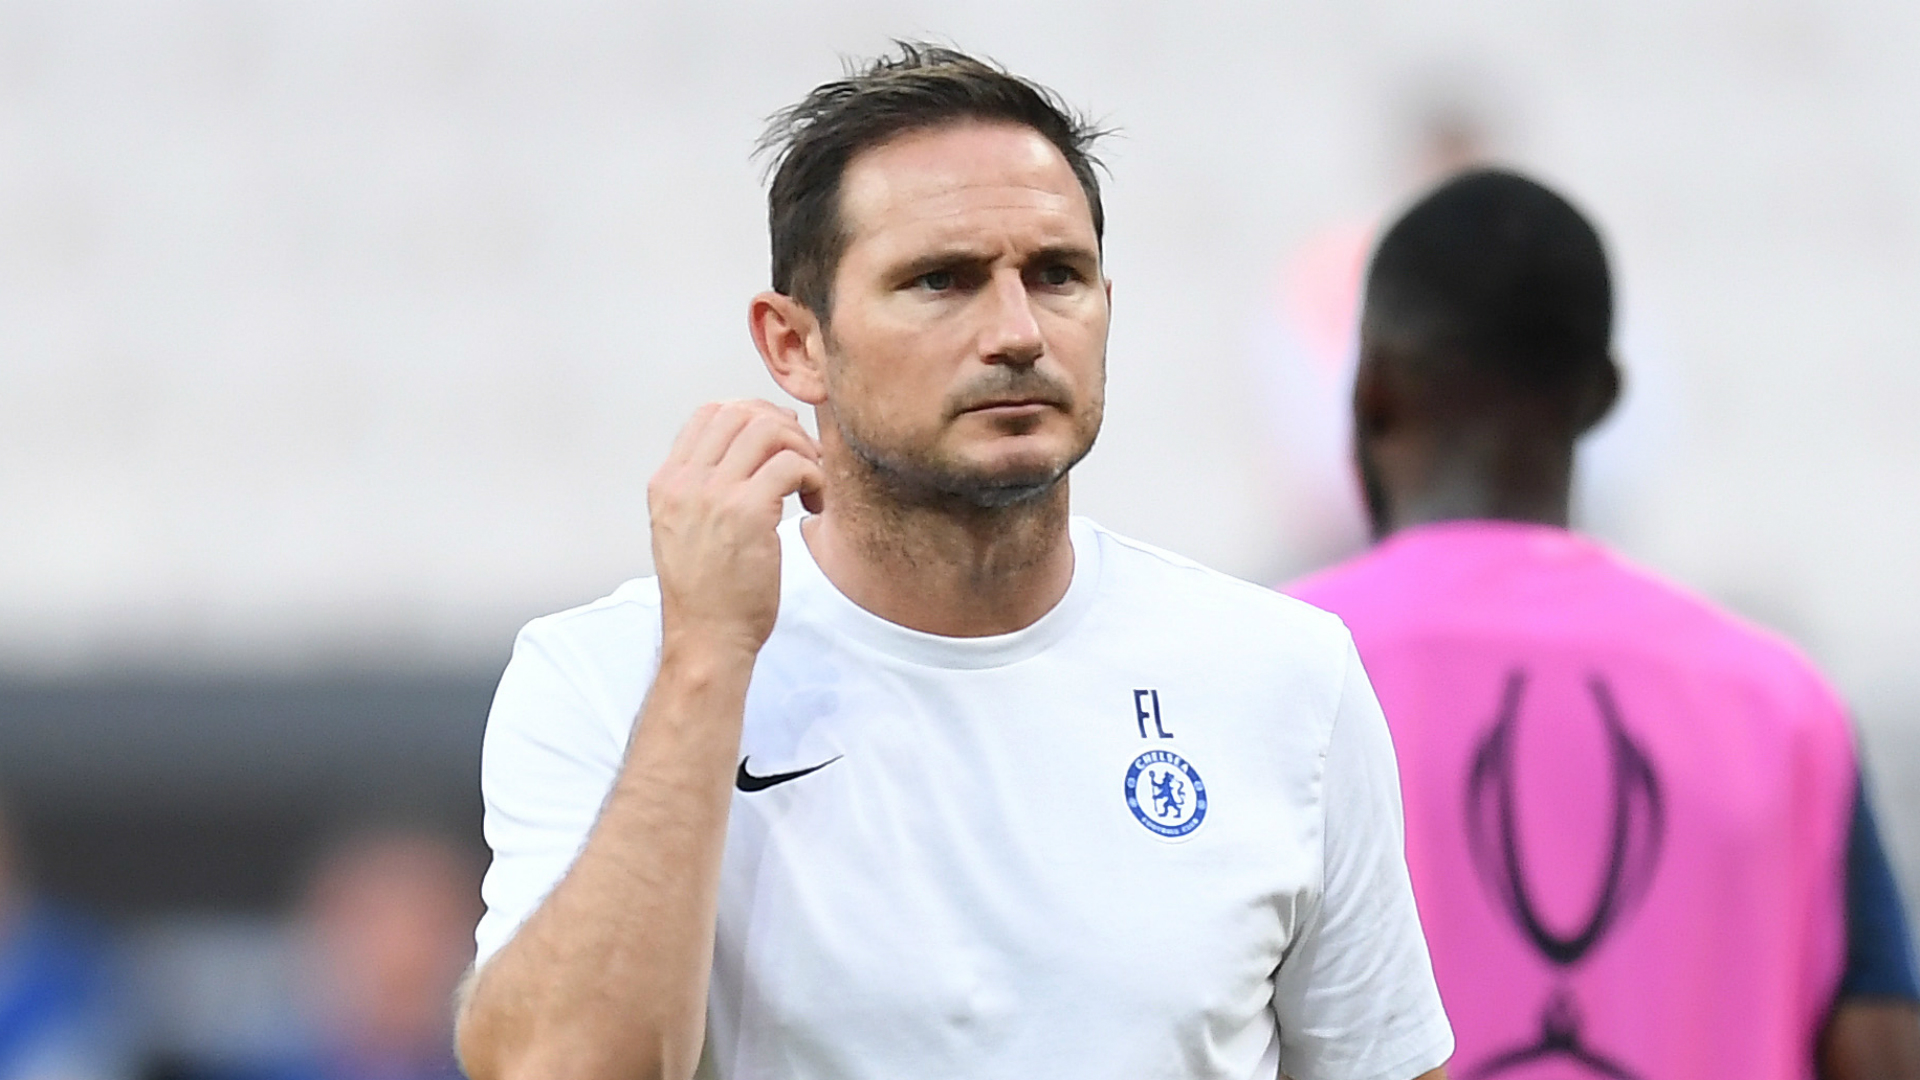 Lampard not surprised by Mourinho criticism